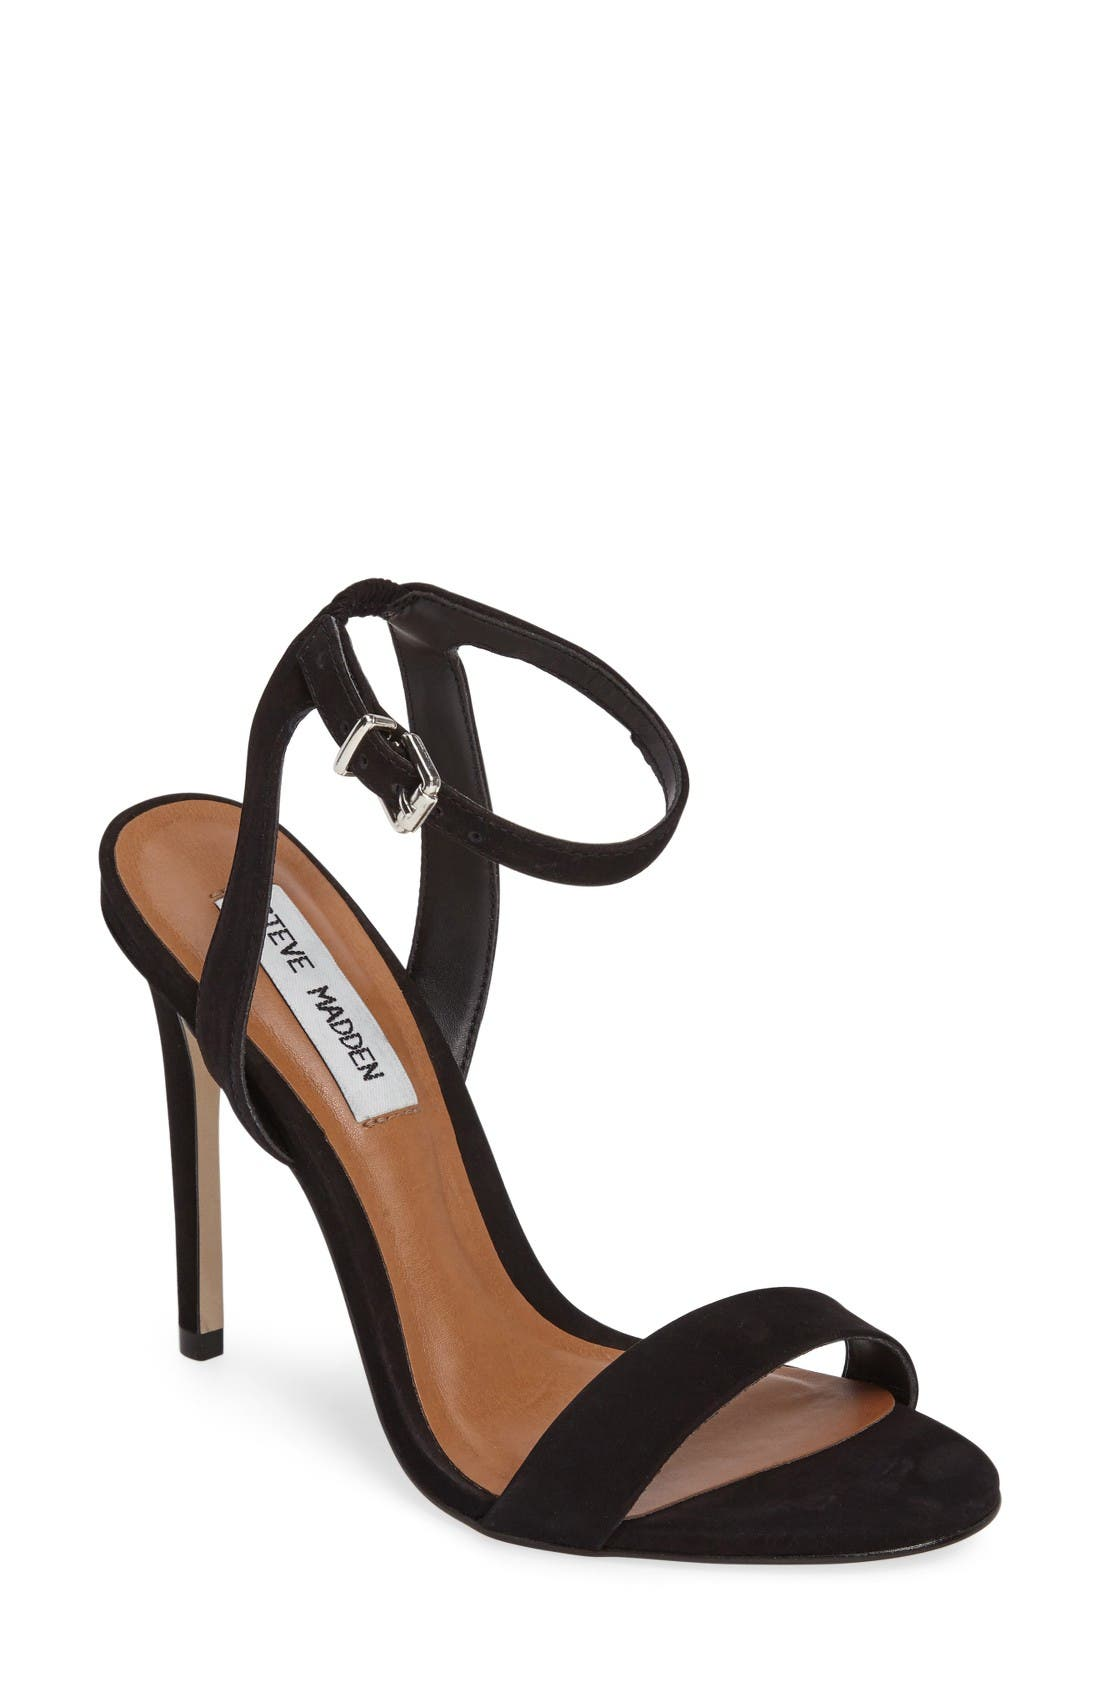 Landen Ankle Strap Sandal,                             Main thumbnail 1, color,                             Black Nubuck Leather